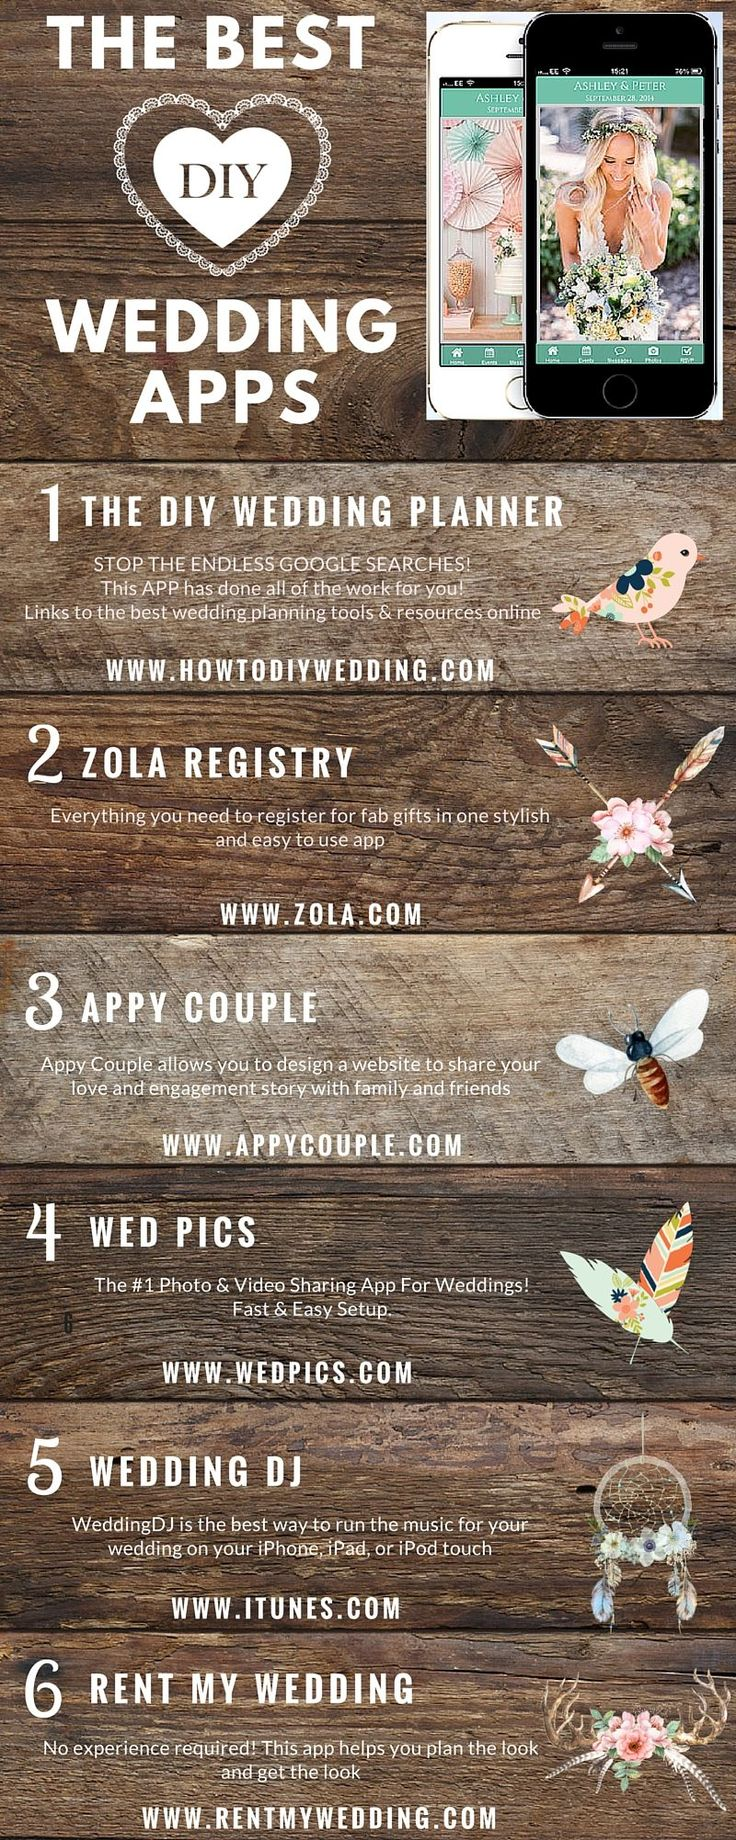 wedding planning checklist spreadsheet free%0A  swansondiamondcenter  weddingtips Great apps to help with wedding planning